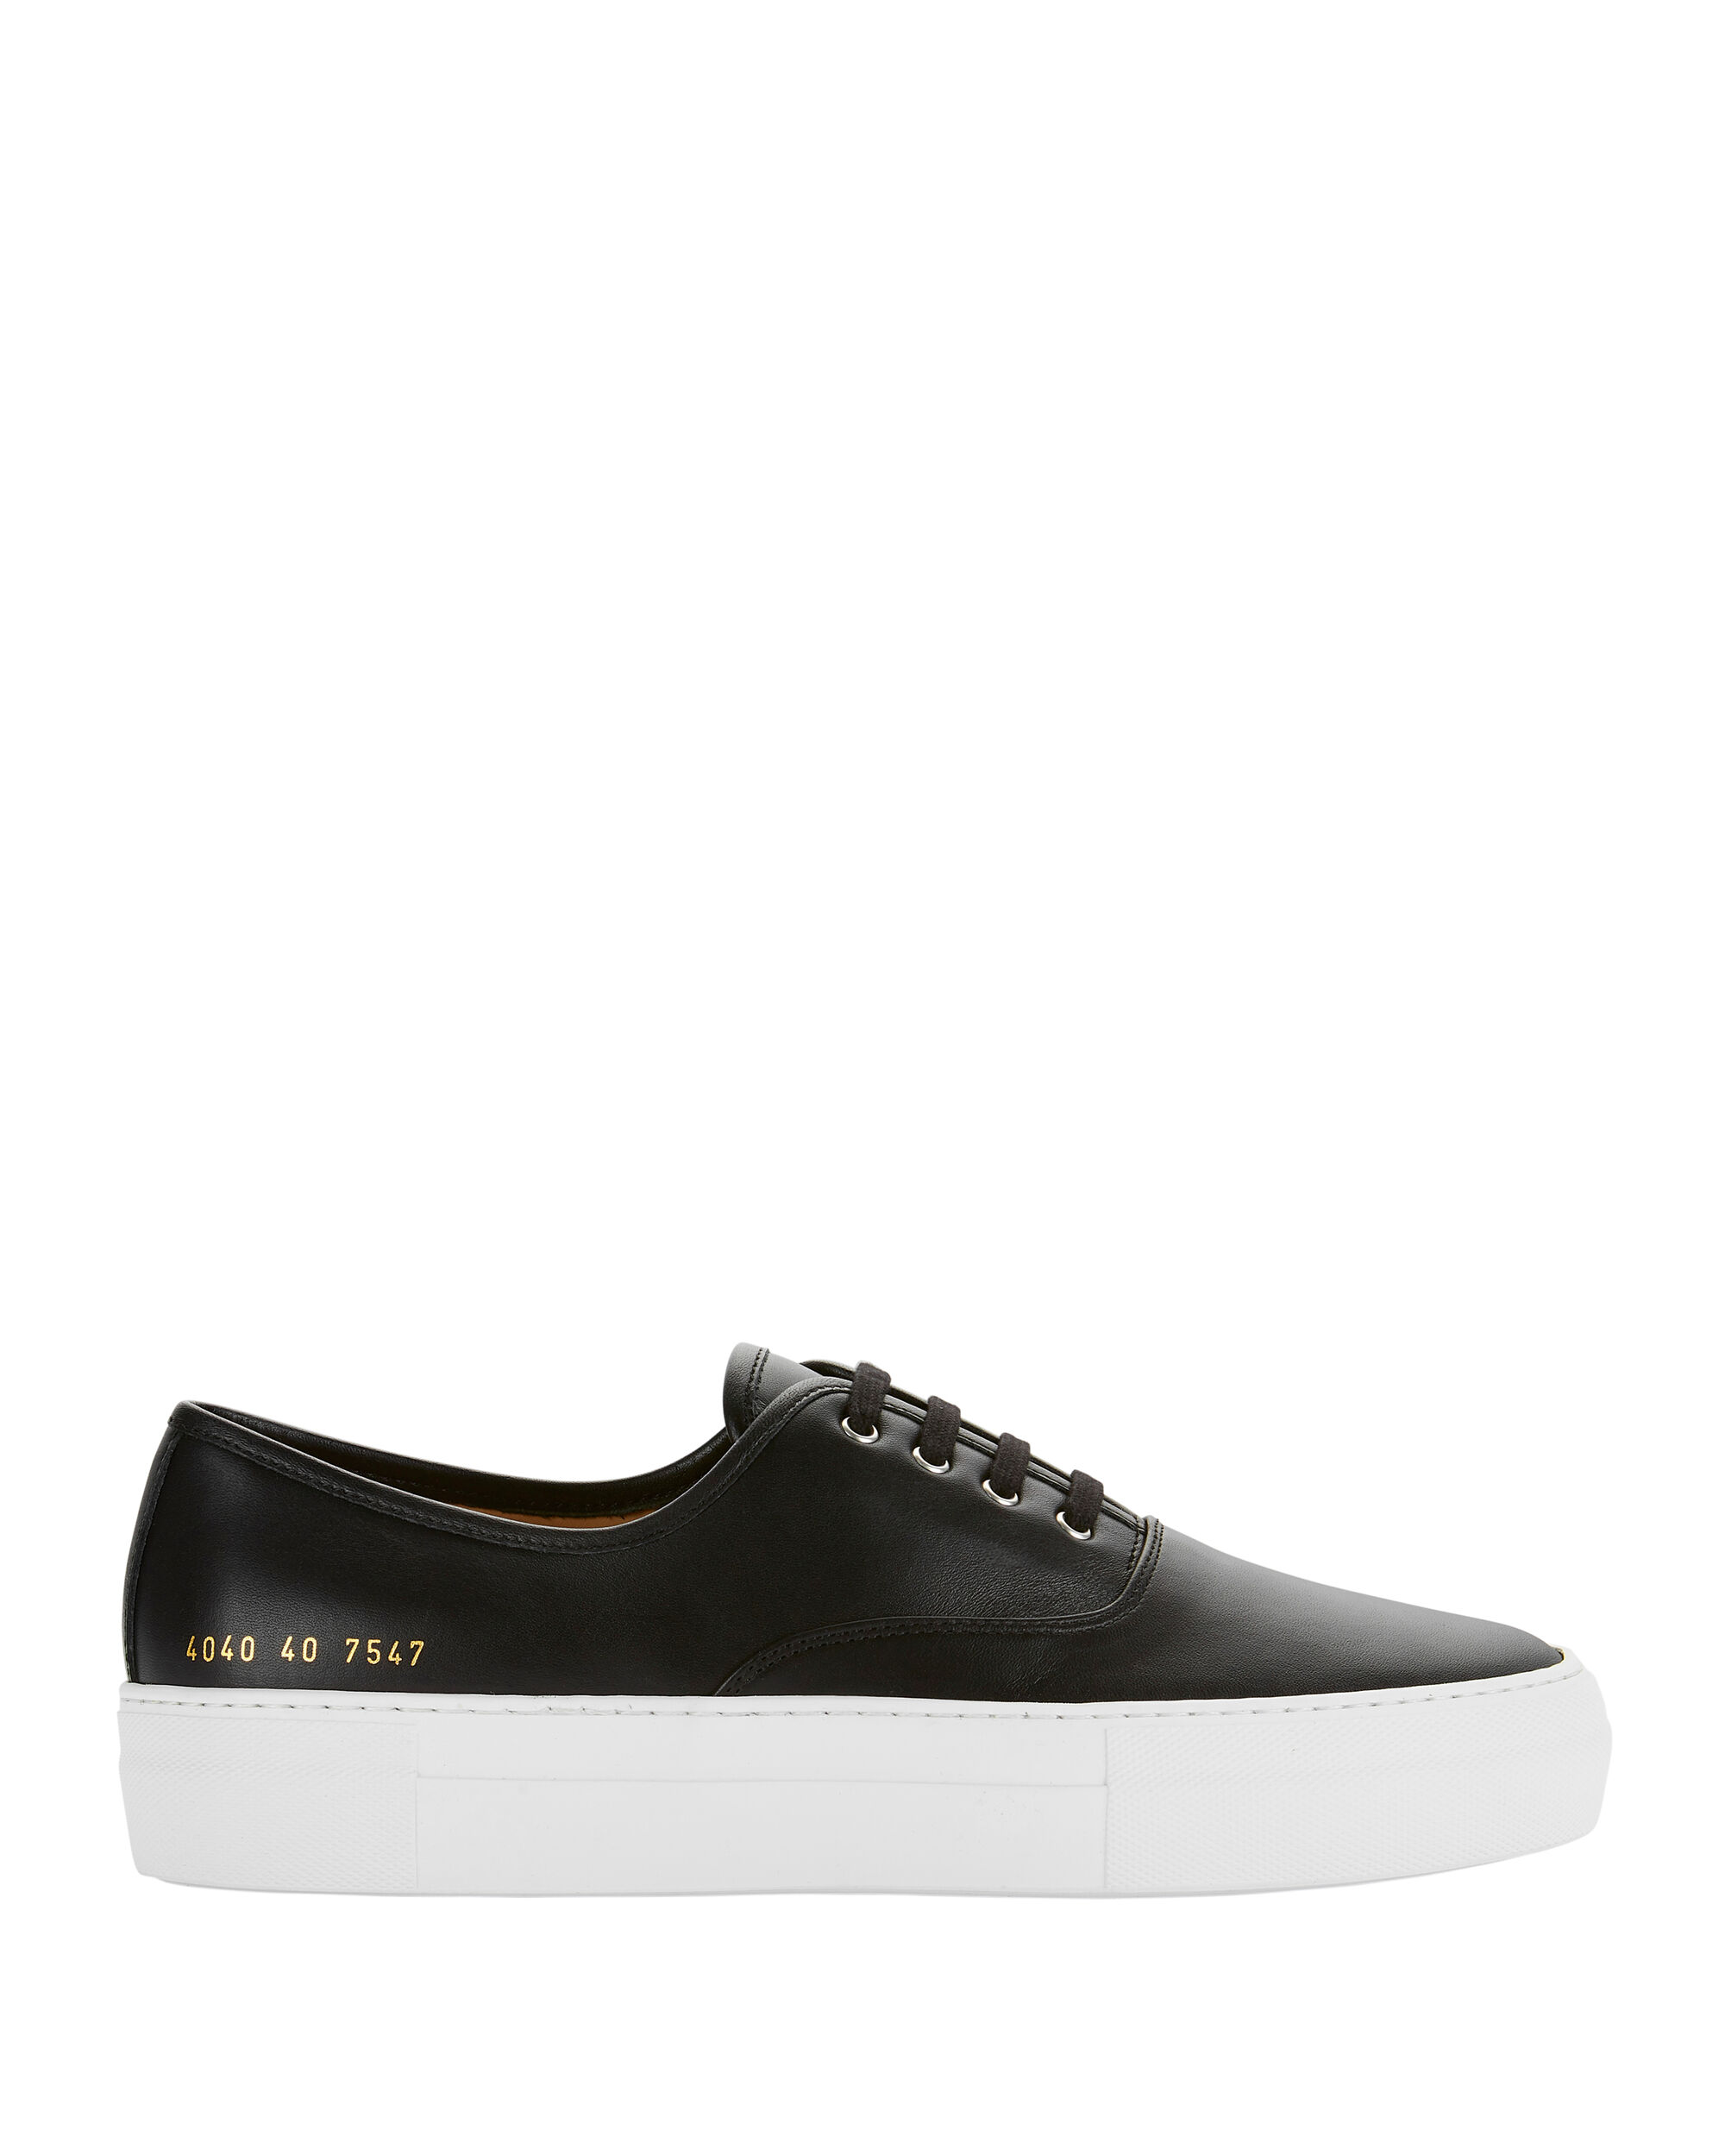 Tournament Low-Top Black Leather Sneakers, BLACK, hi-res